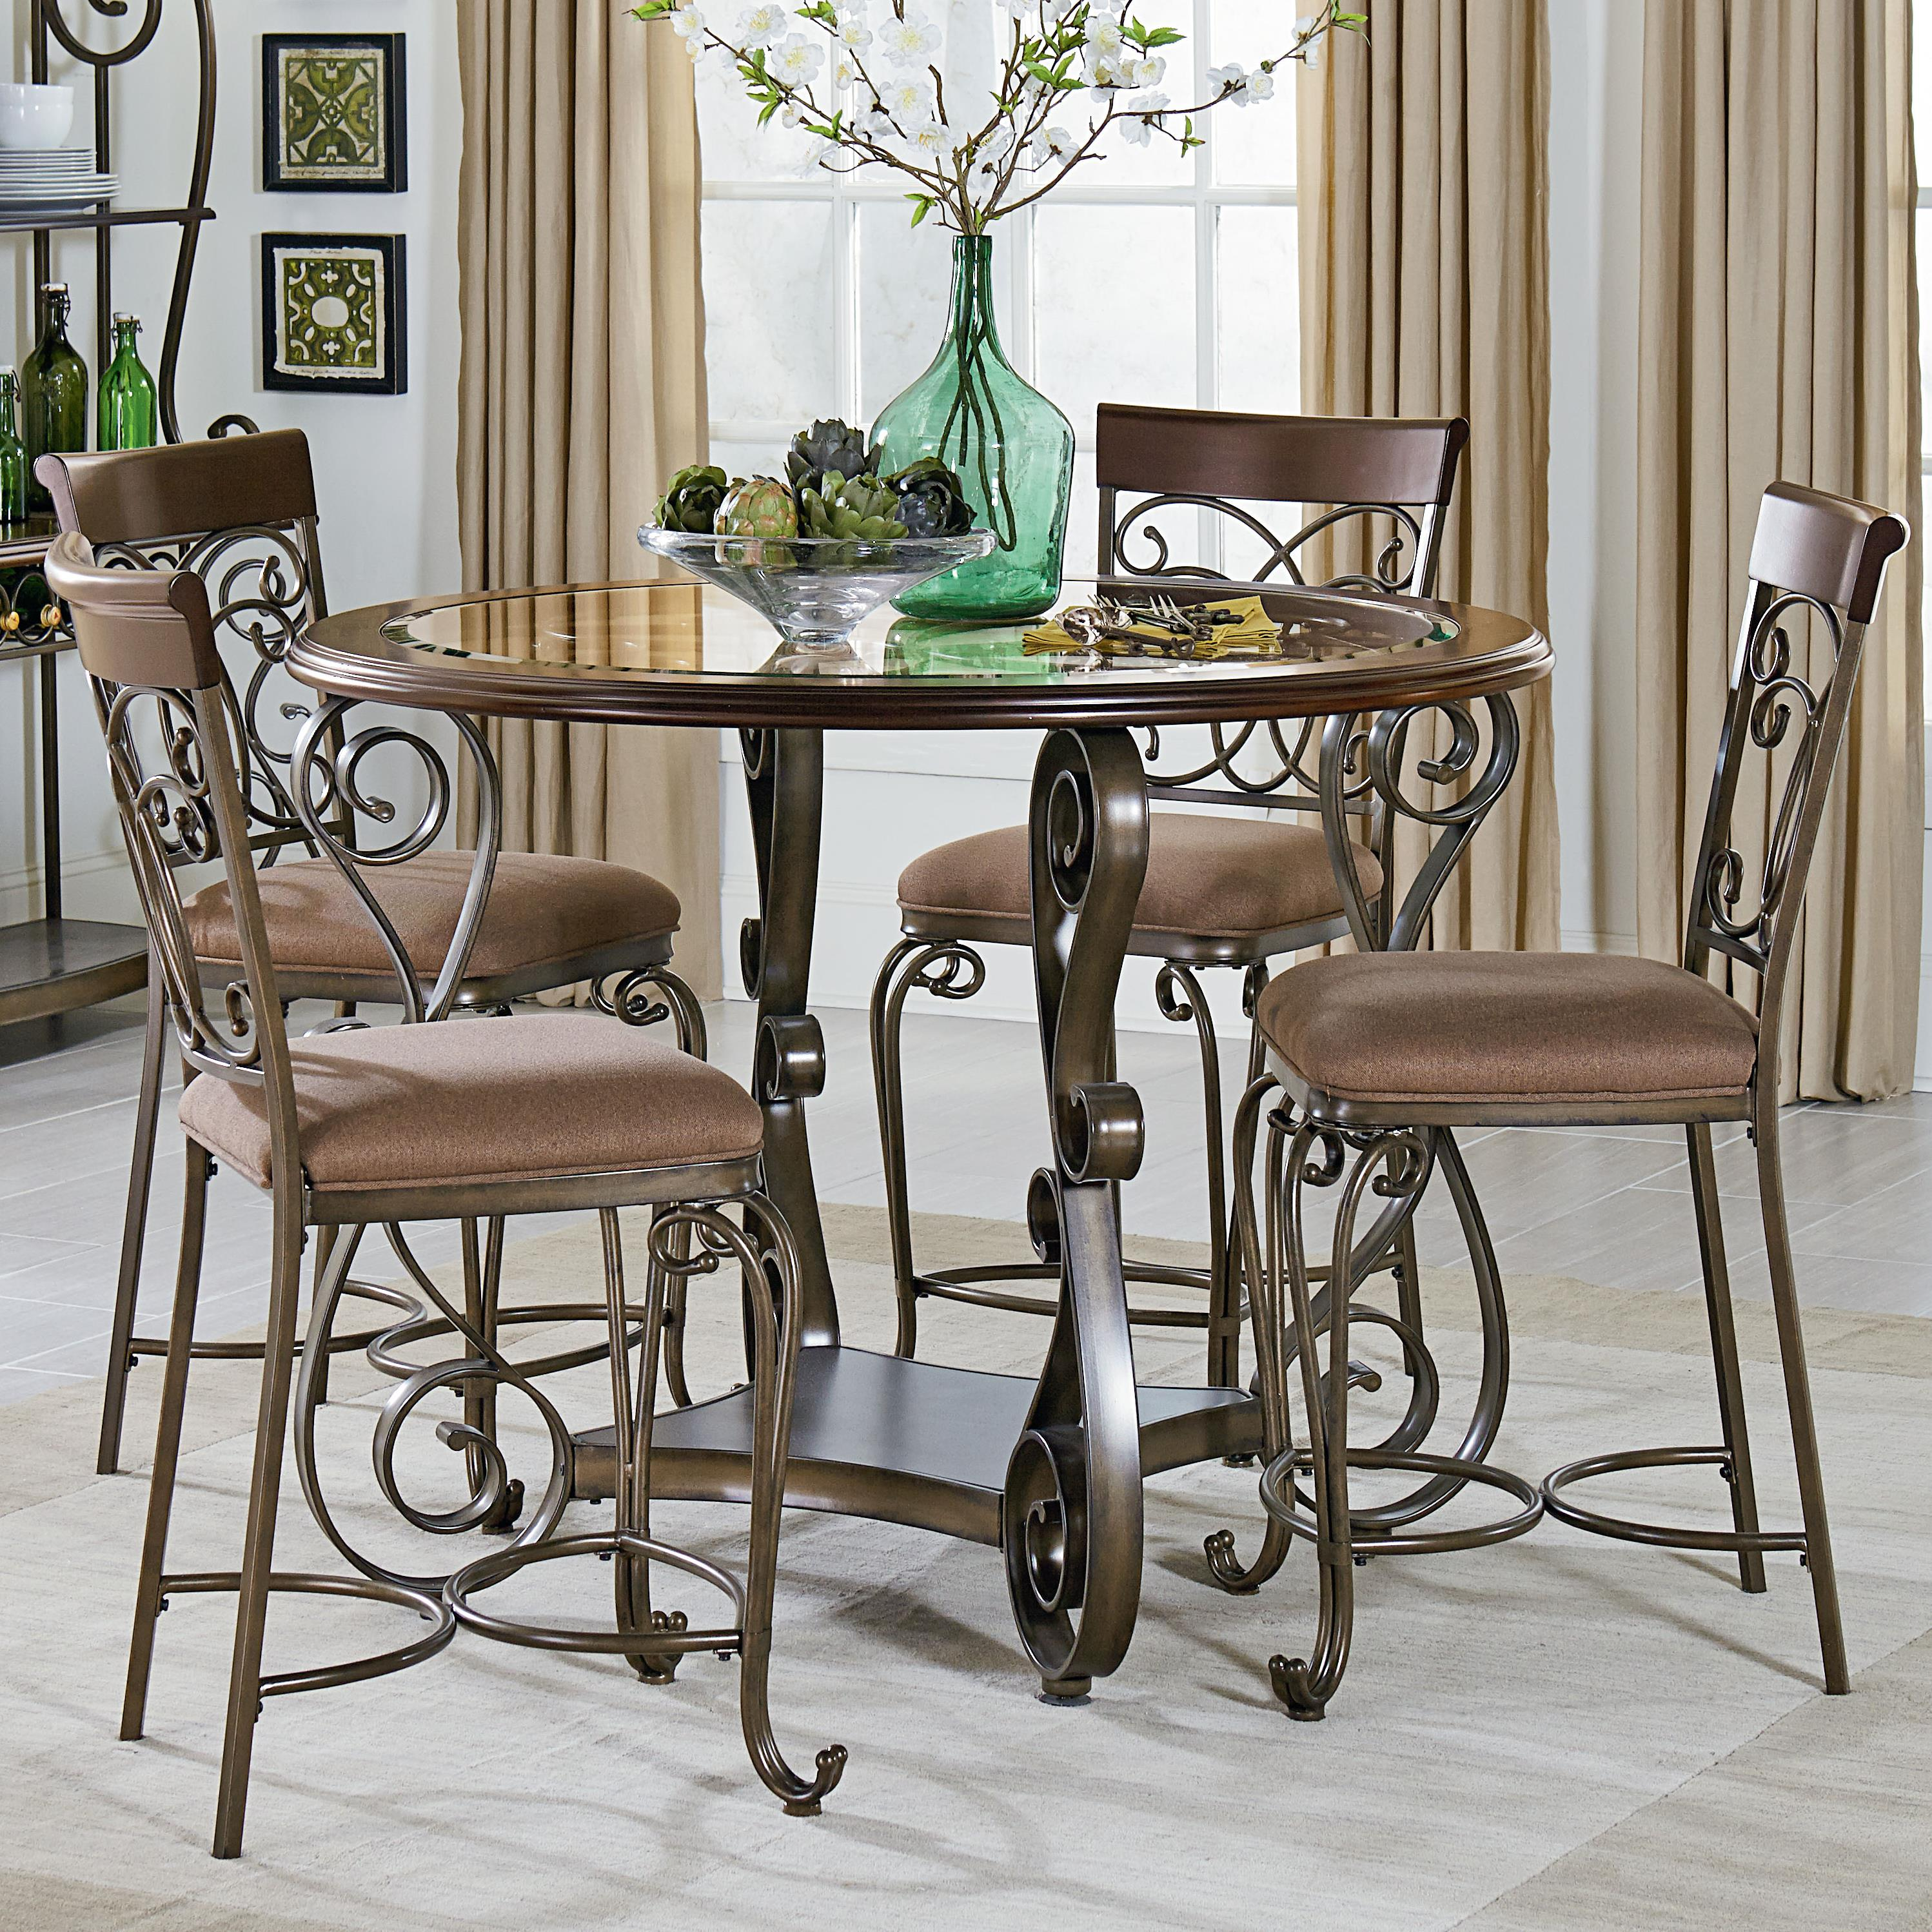 standard furniture bombay round counter height table and chair set olinde 39 s furniture pub. Black Bedroom Furniture Sets. Home Design Ideas